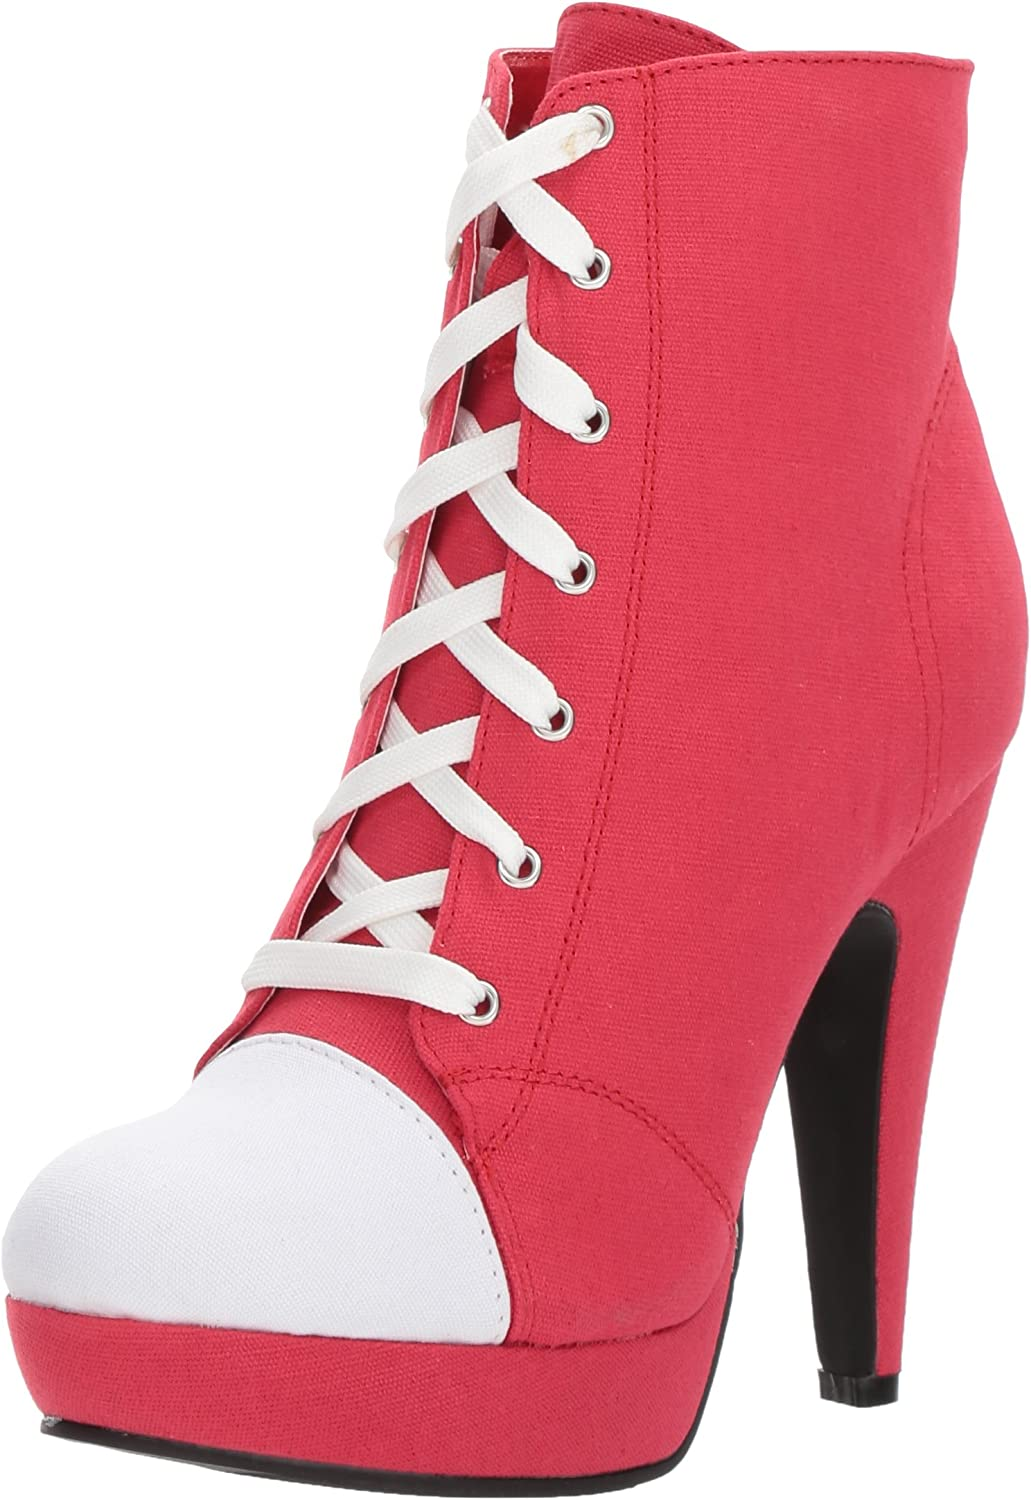 Ellie shoes Womens 423-sport Ankle Bootie